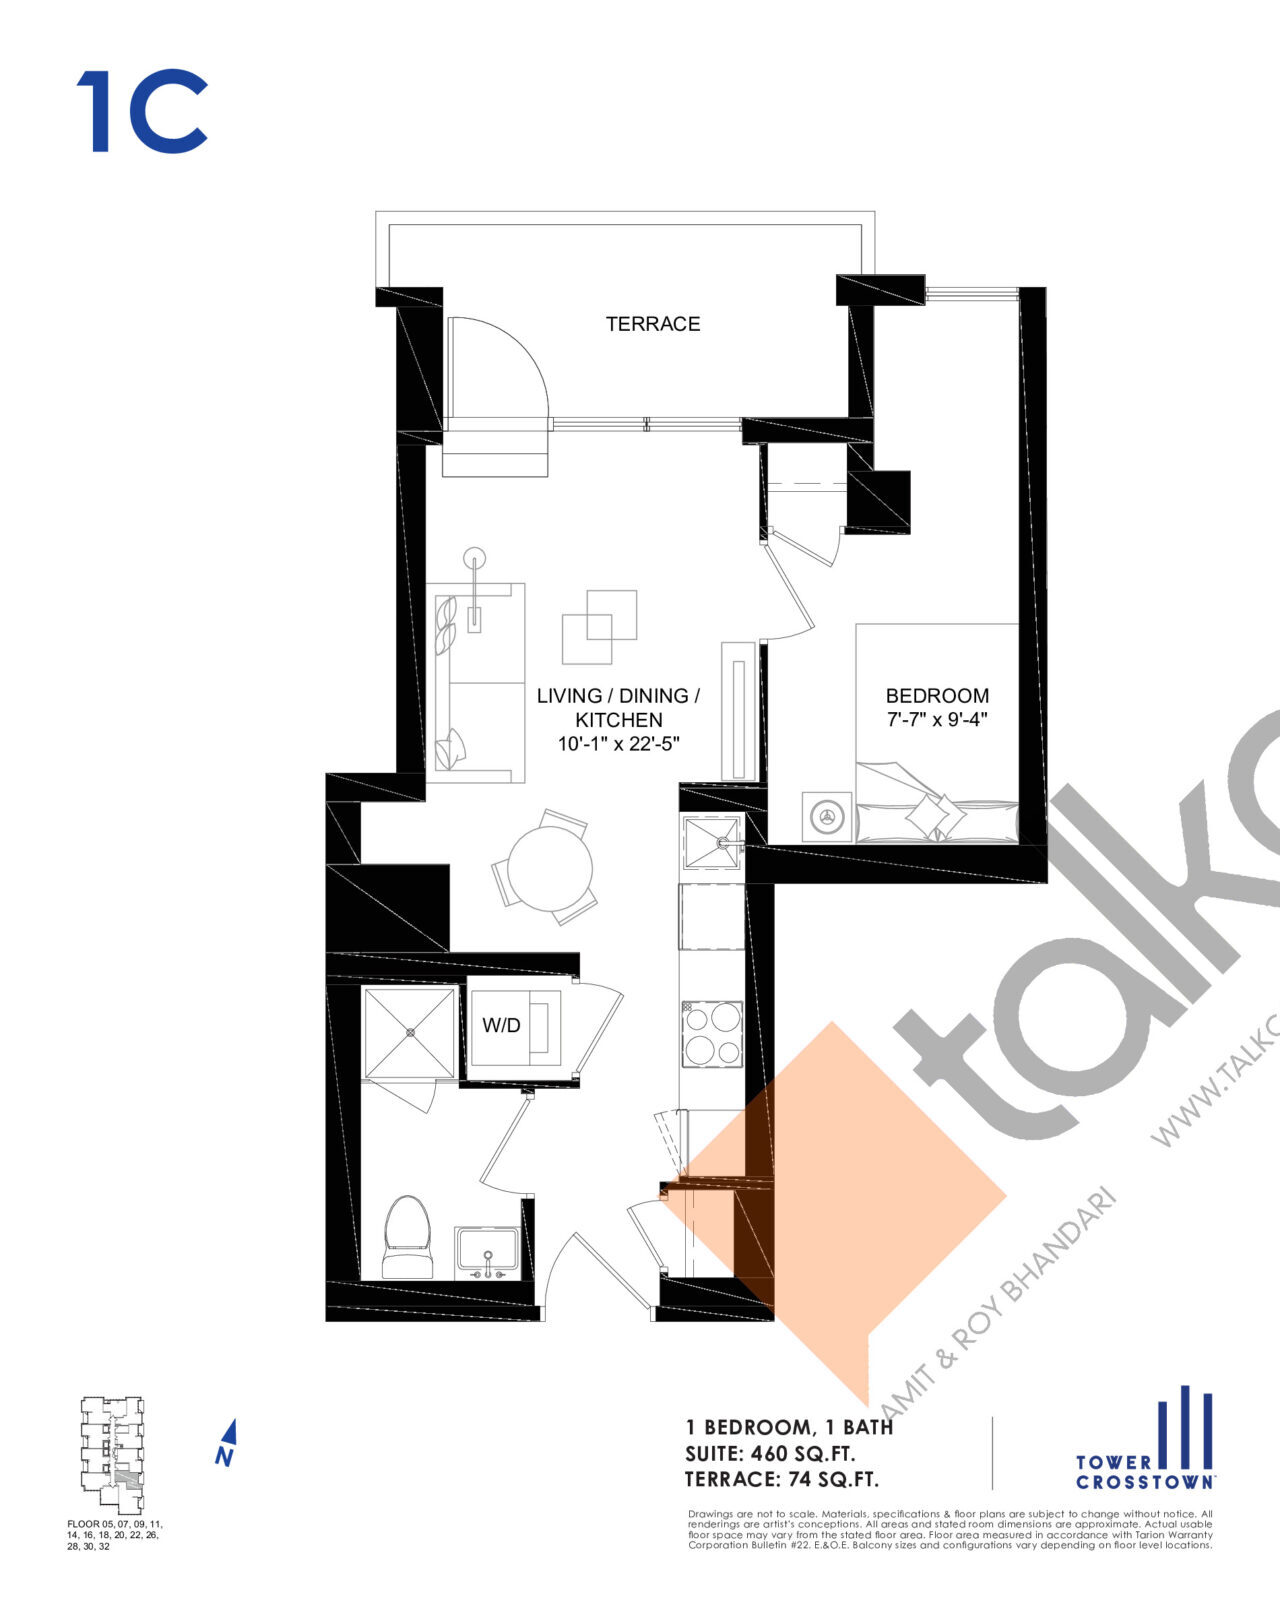 1C Floor Plan at Crosstown Tower 3 Condos - 460 sq.ft